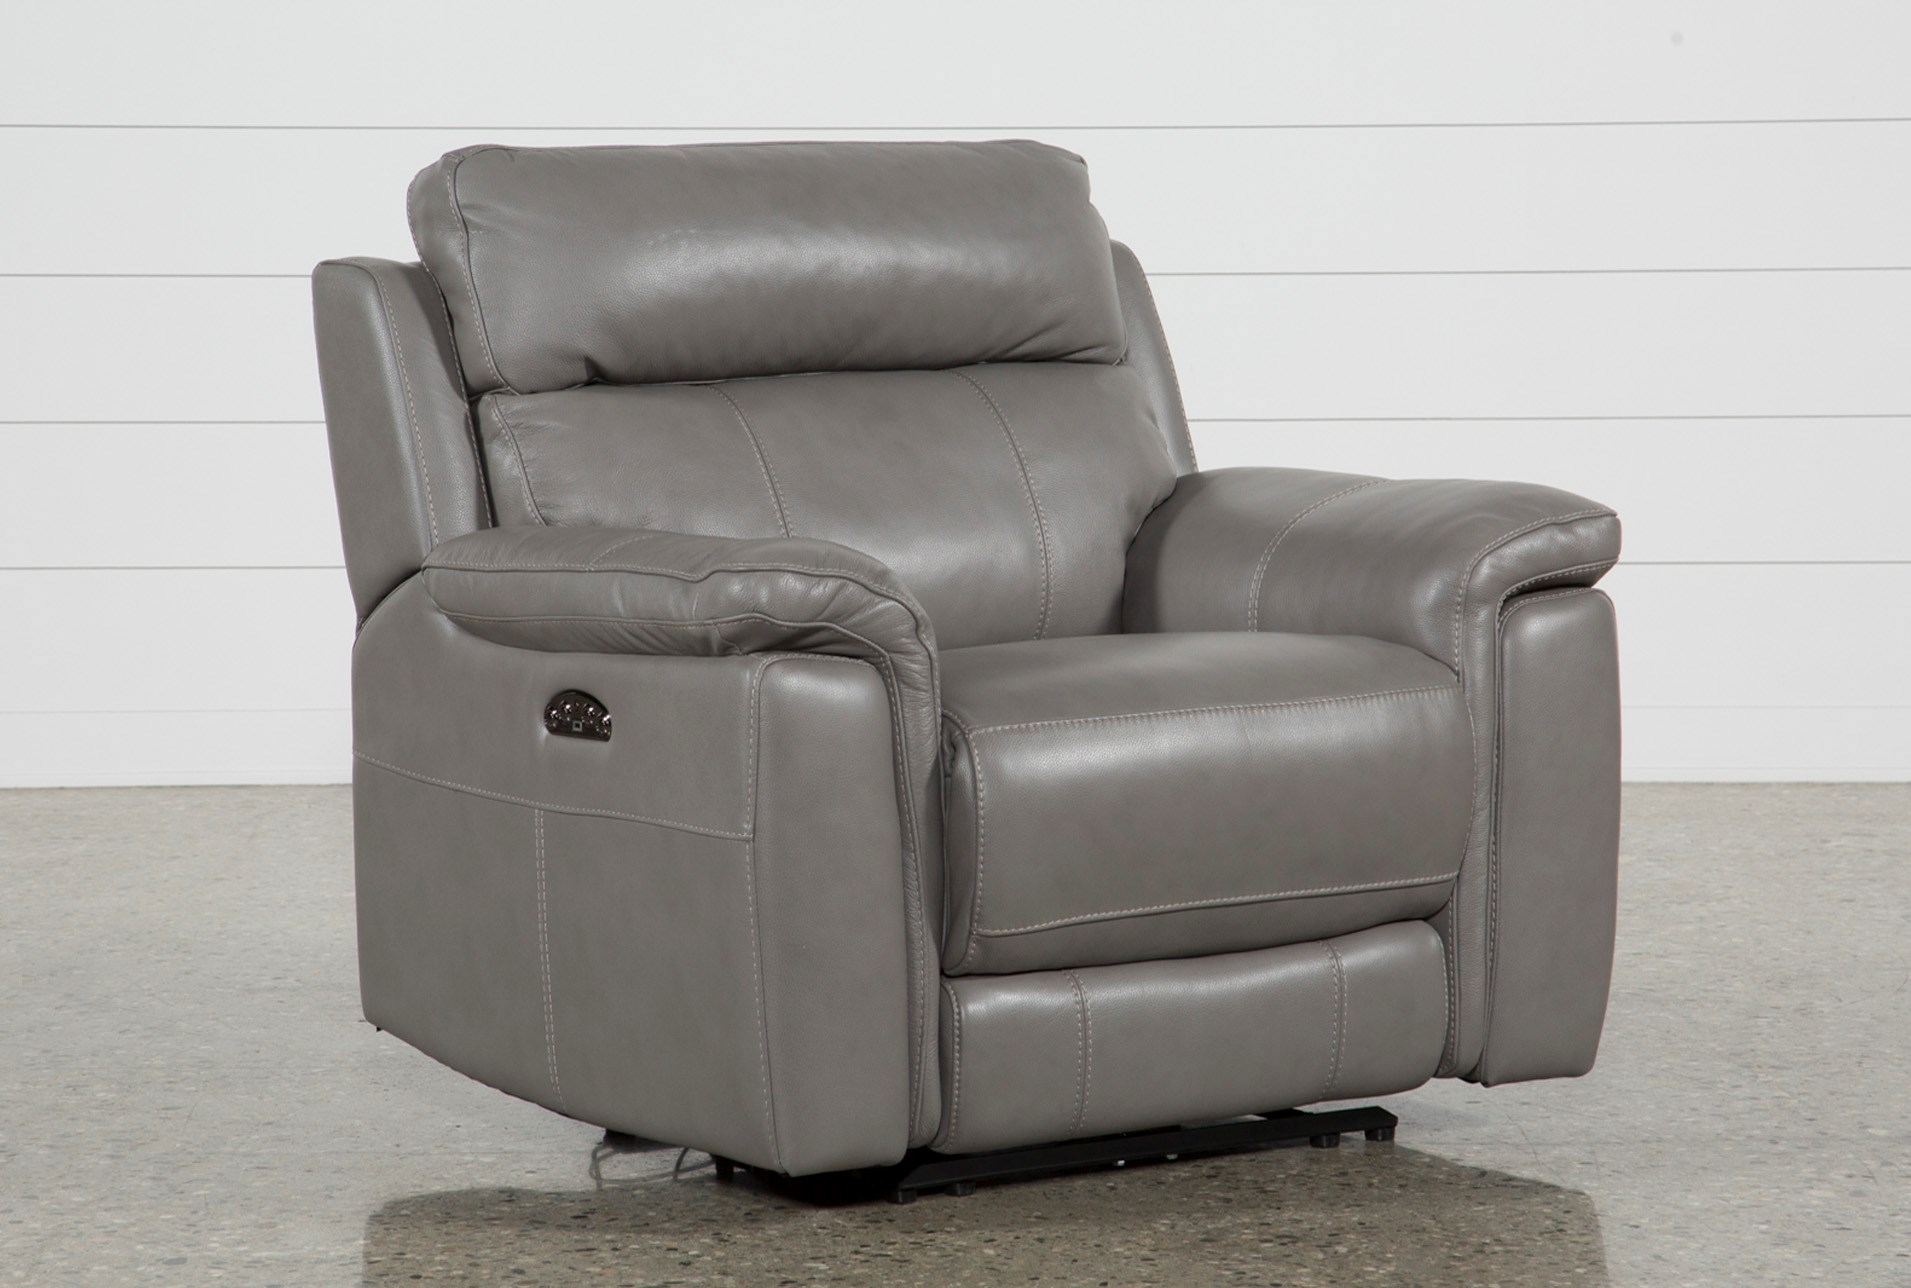 Dino grey leather power recliner w power headrest usb qty 1 has been successfully added to your cart